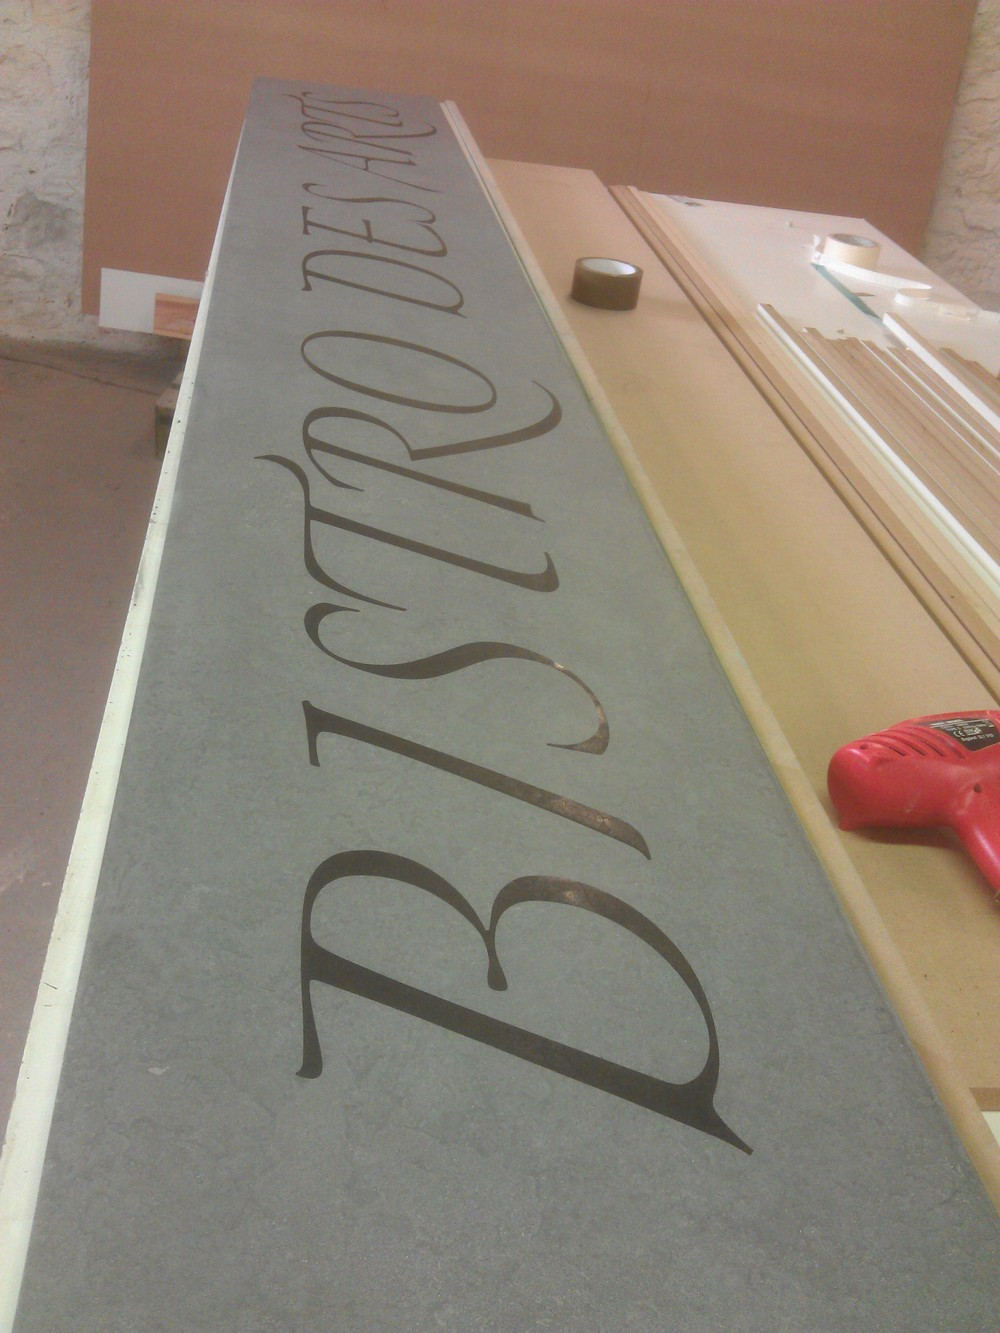 Concrete Floor Sign With Text